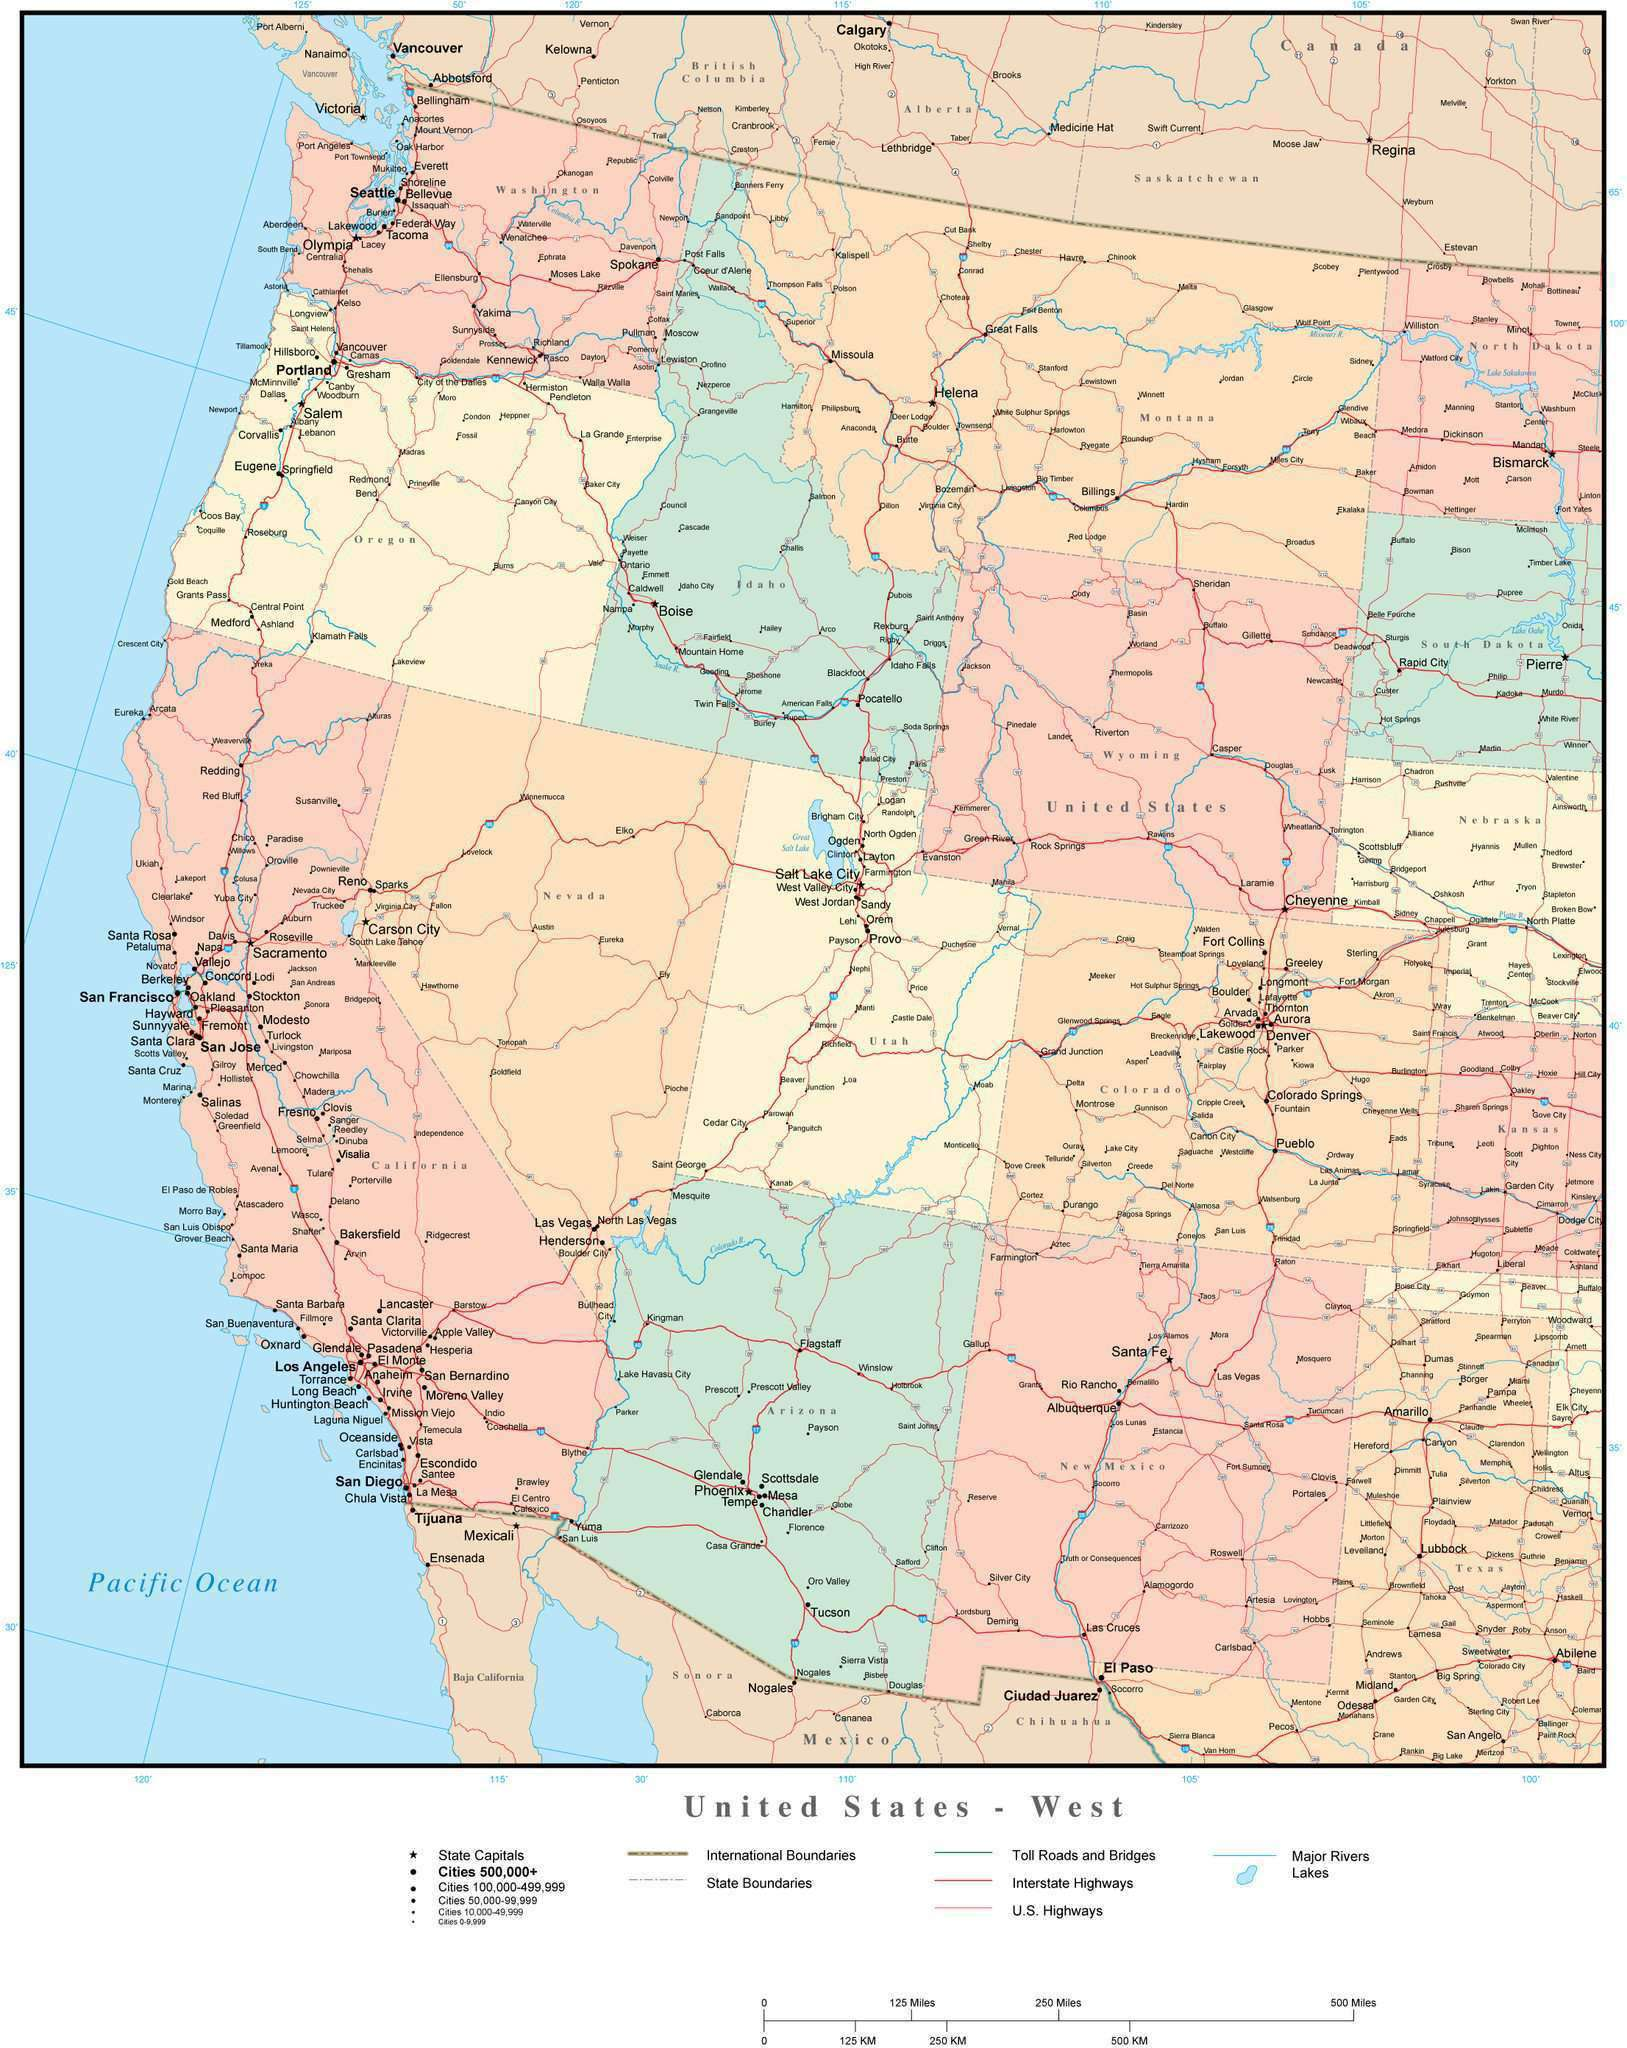 Picture of: Usa West Region Map With State Boundaries Highways And Cities